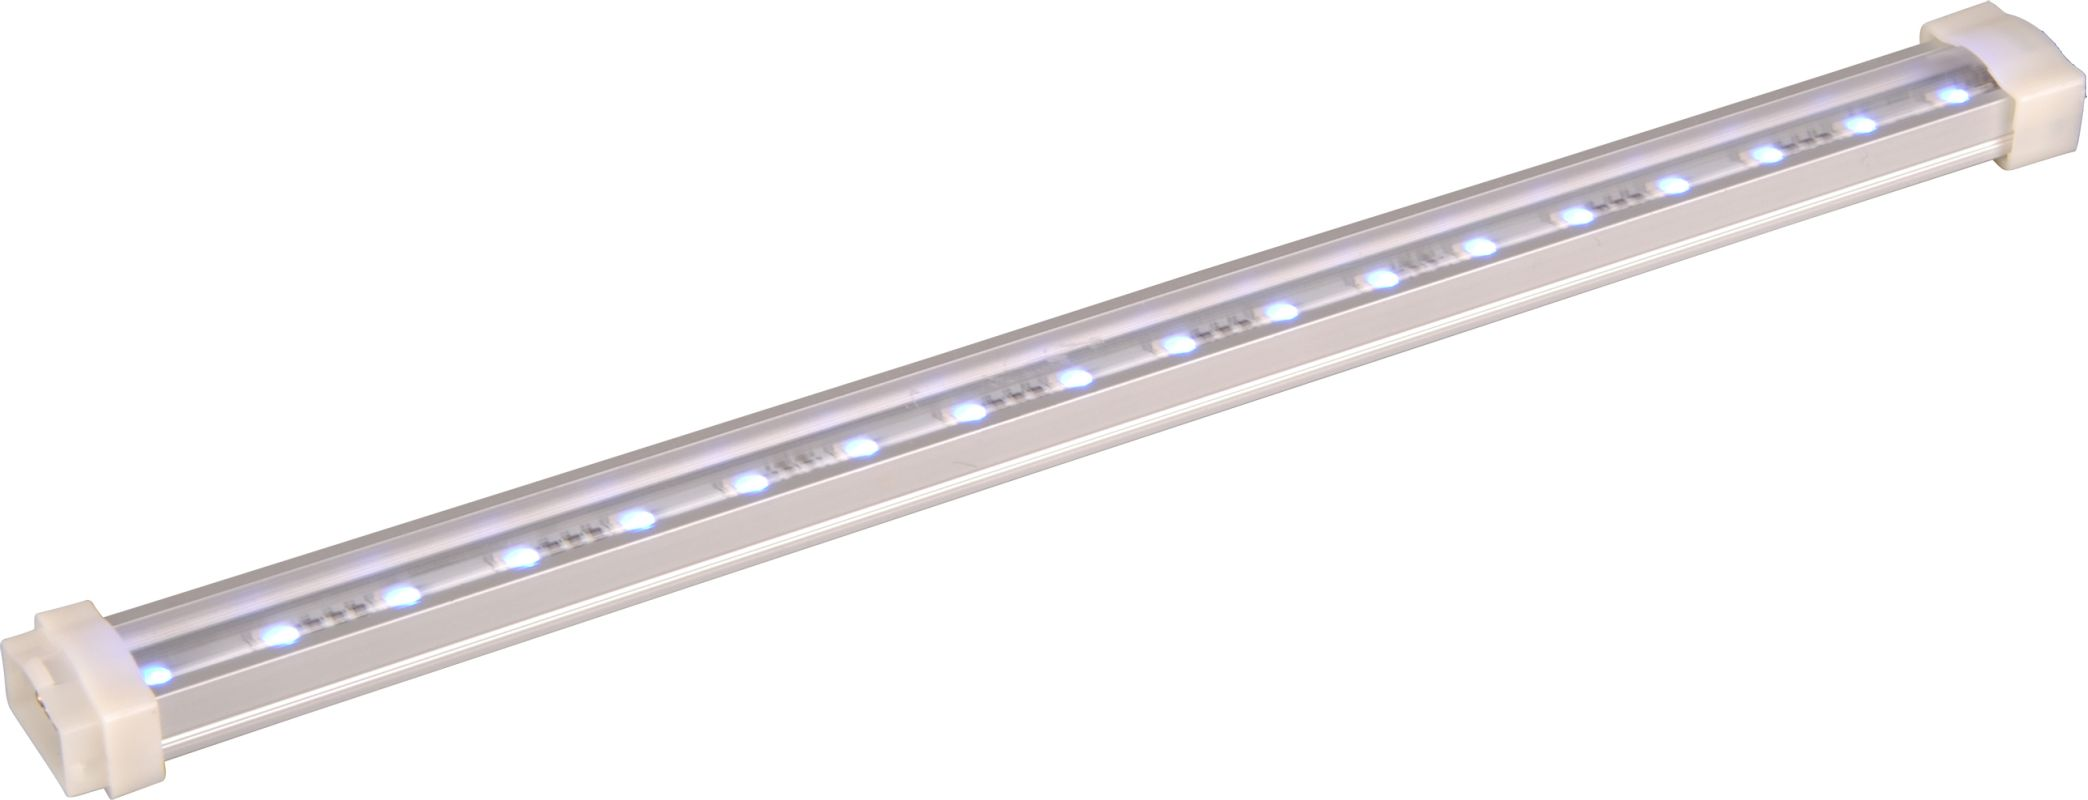 Maxim 53700 6 Inch LED Under Cabinet Tape Light from the StarStrand